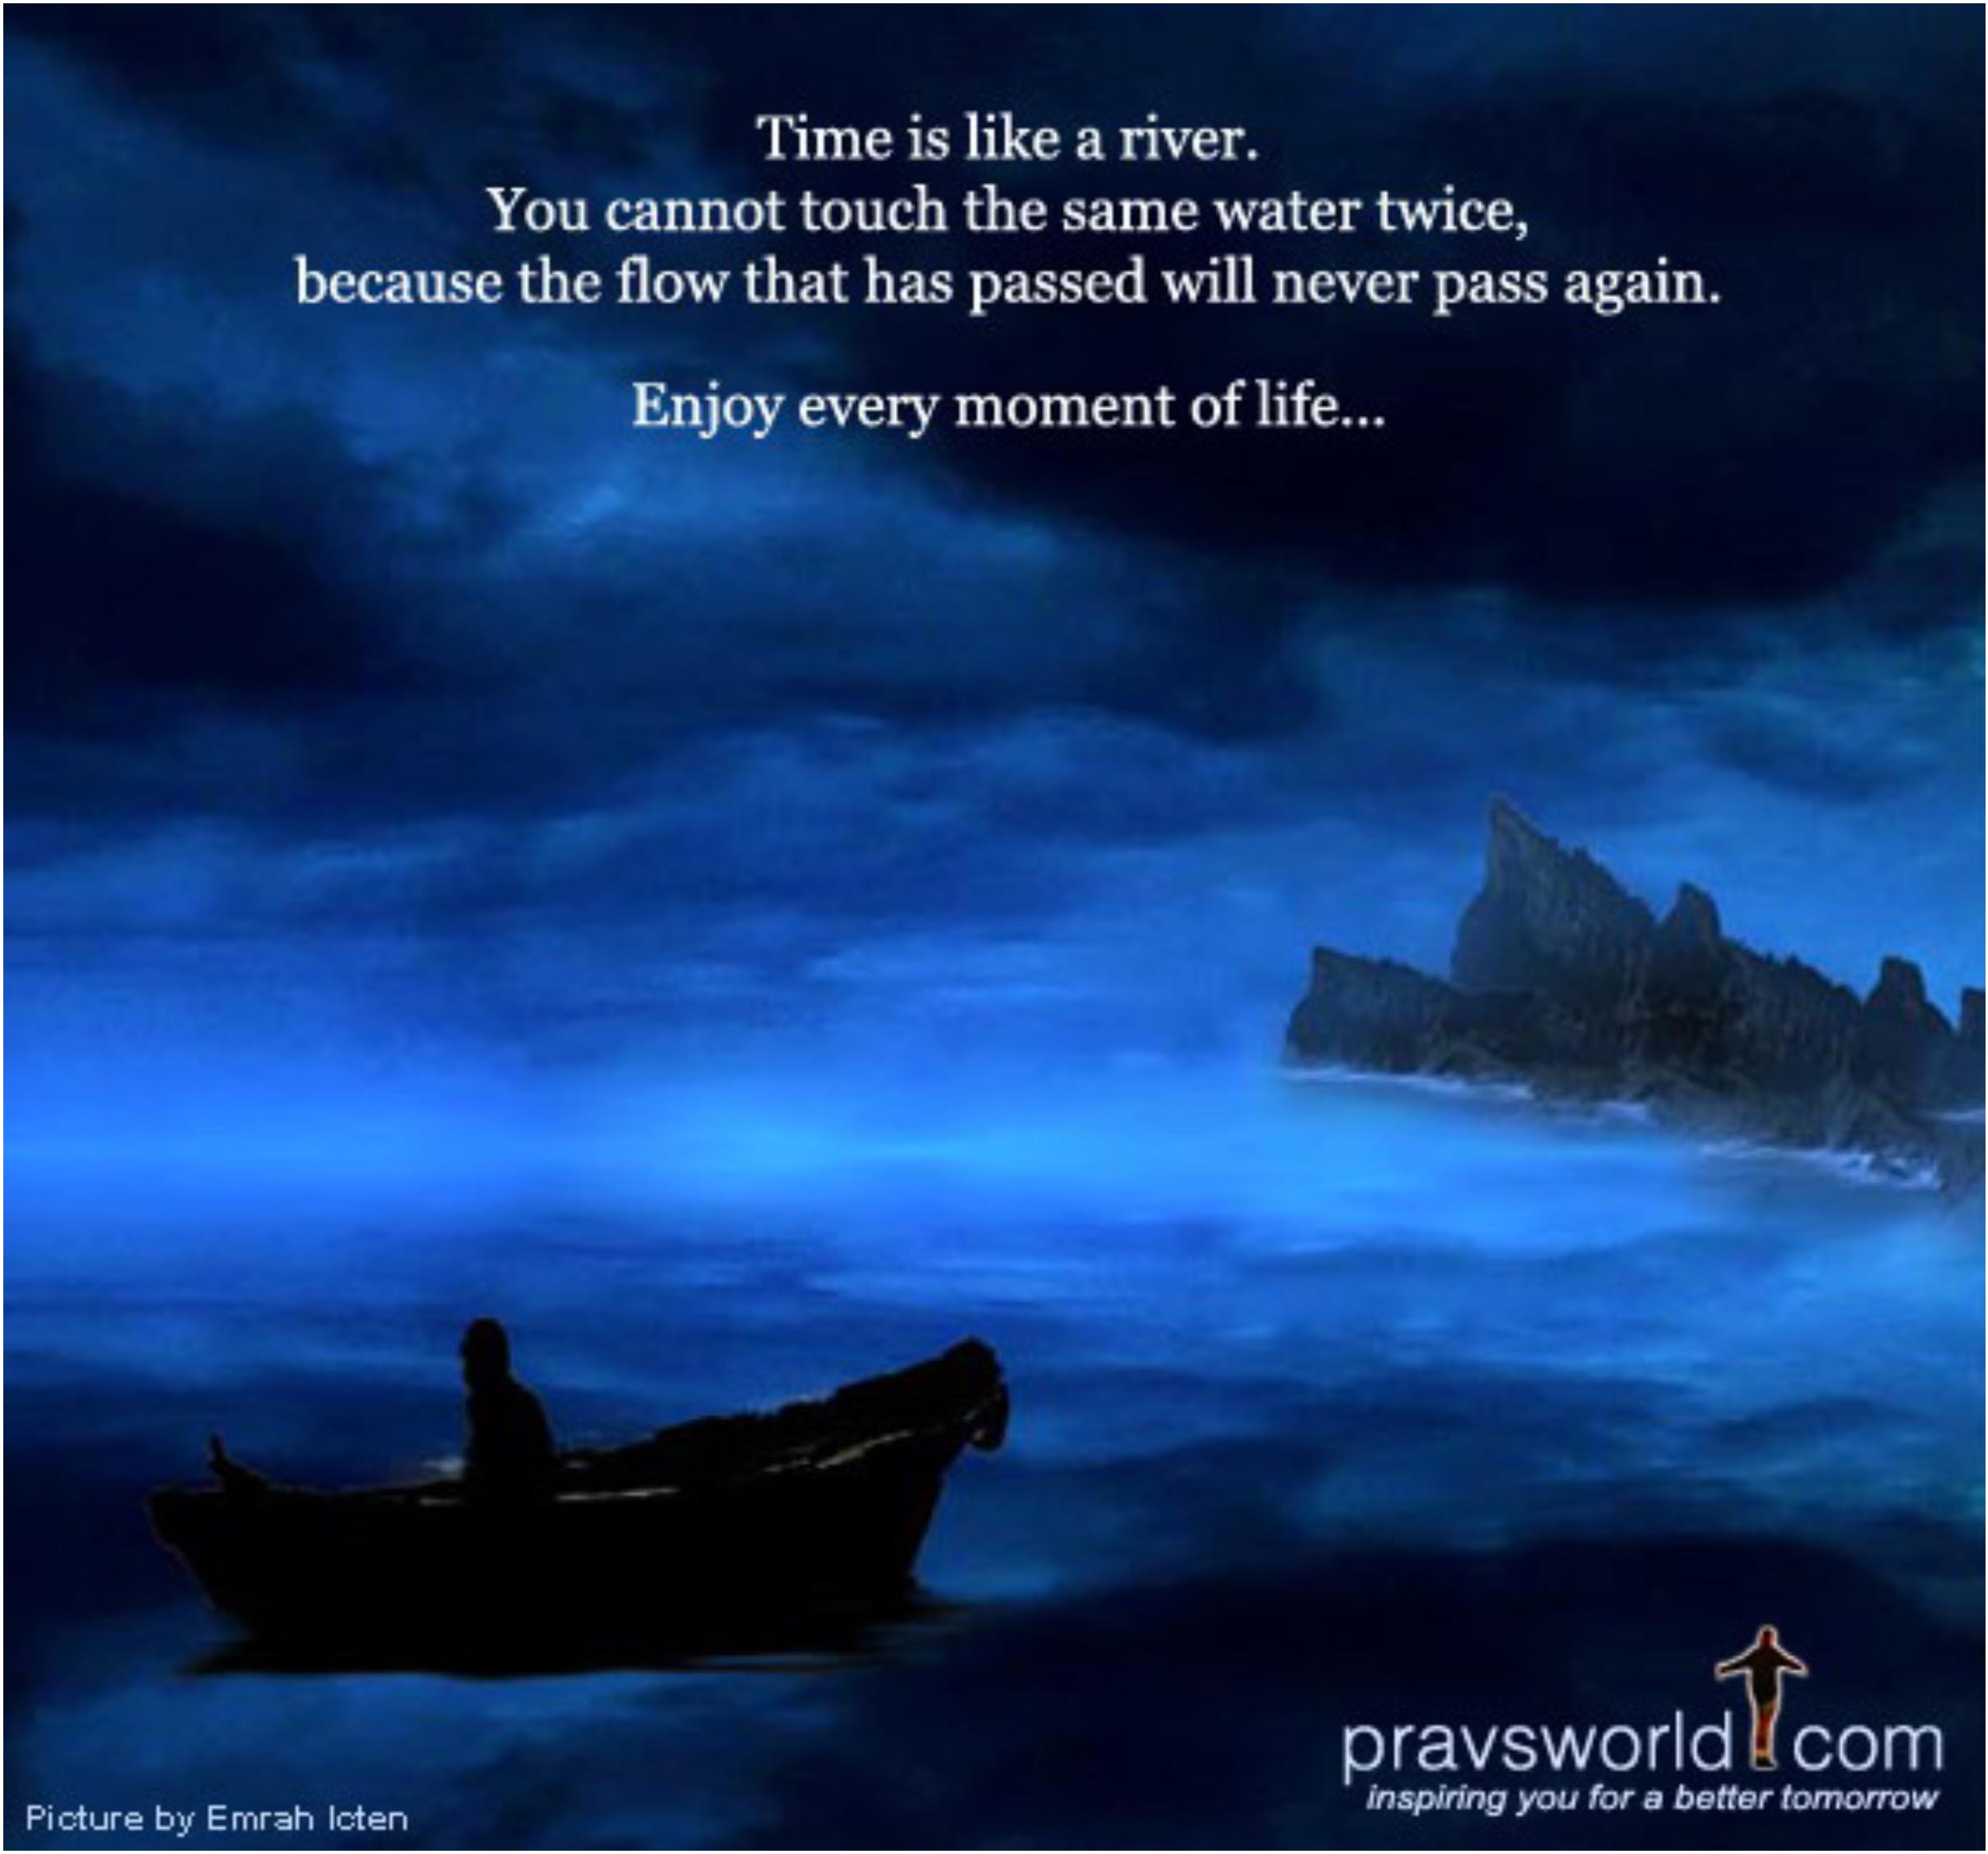 Time Is Like A River. You Cannot Touch The Same Water Twice, Because The Flow That Passed Will Never Pass Again. Enjoy Every Moment Of Life